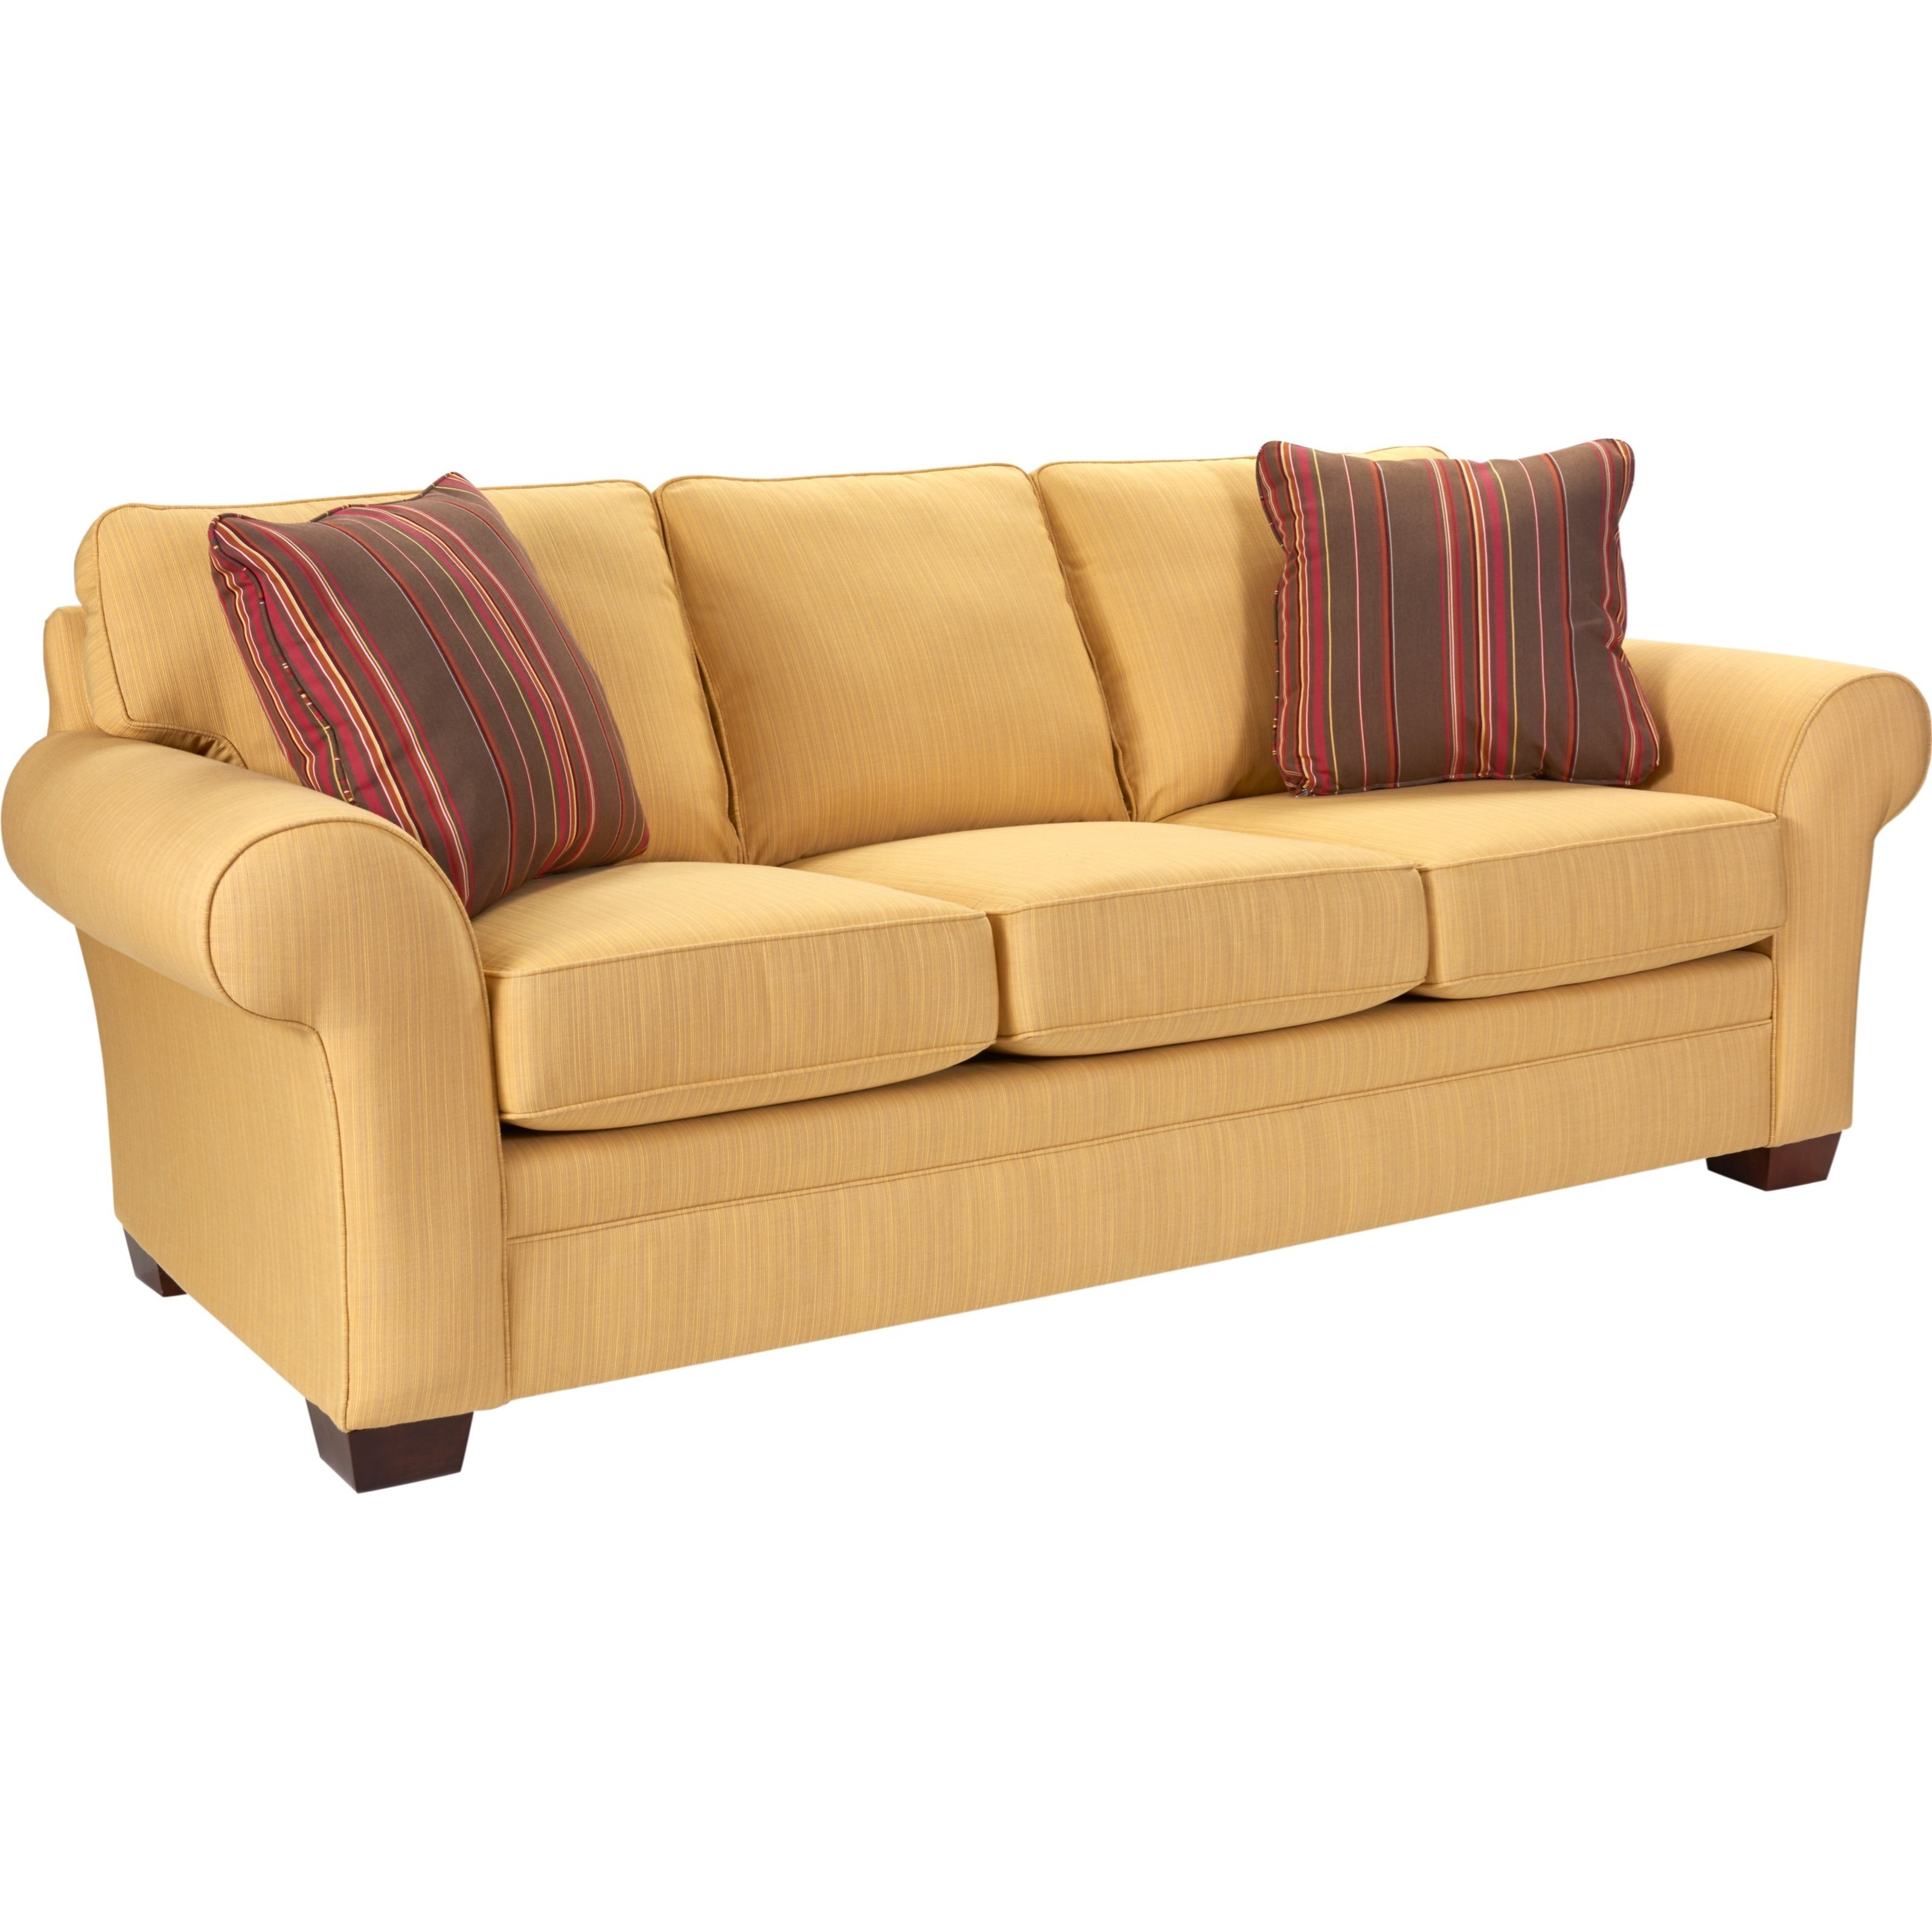 Broyhill Furniture Zachary Queen Size Sleeper - Item Number: S7902-7-8012-0000